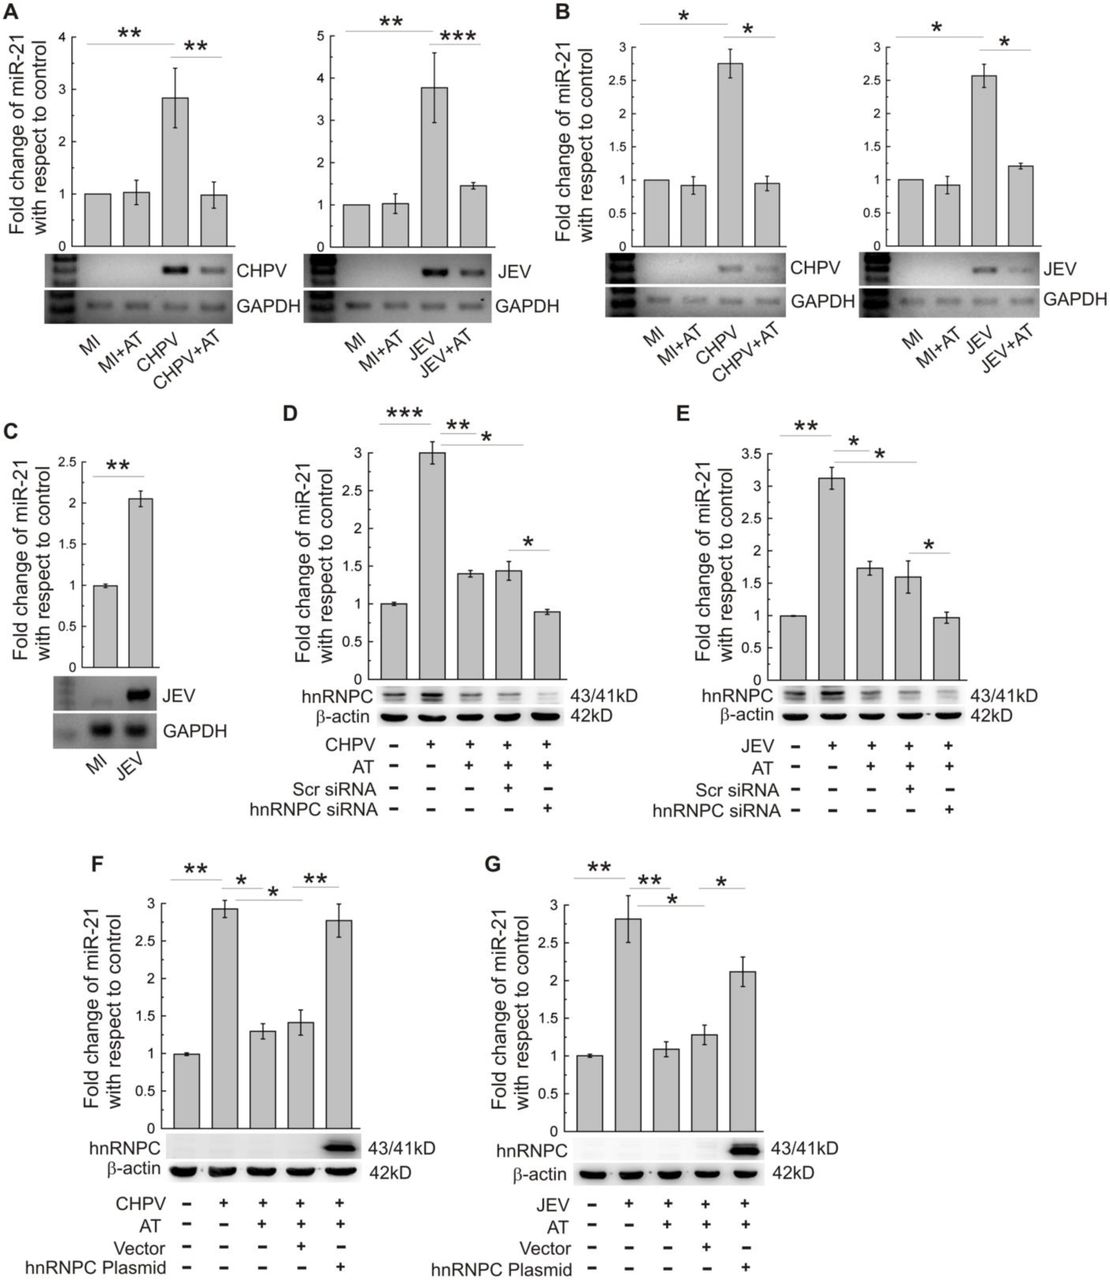 Atorvastatin suppresses virus-induced miR-21 expression through hnRNPC. (A) BALB/c mice were treated with PBS (MI), PBS with atorvastatin (MI+AT), infected with CHPV (CHPV) and CHPV-infected along with atorvastatin treatment (CHPV+AT). Following 3 days post infection, brain samples were collected and miR-21 abundance was analyzed using qRT-PCR. In another similar set of experiments, infection was performed by JEV followed by collection of brain samples at day-7 after infection and miR-21 expression was analyzed by qRT-PCR. In order to assess level of viral propagation, presence of CHPV or JEV RNA was determined by RT-PCR (lower panels). GAPDH expression was verified as loading control. ** P